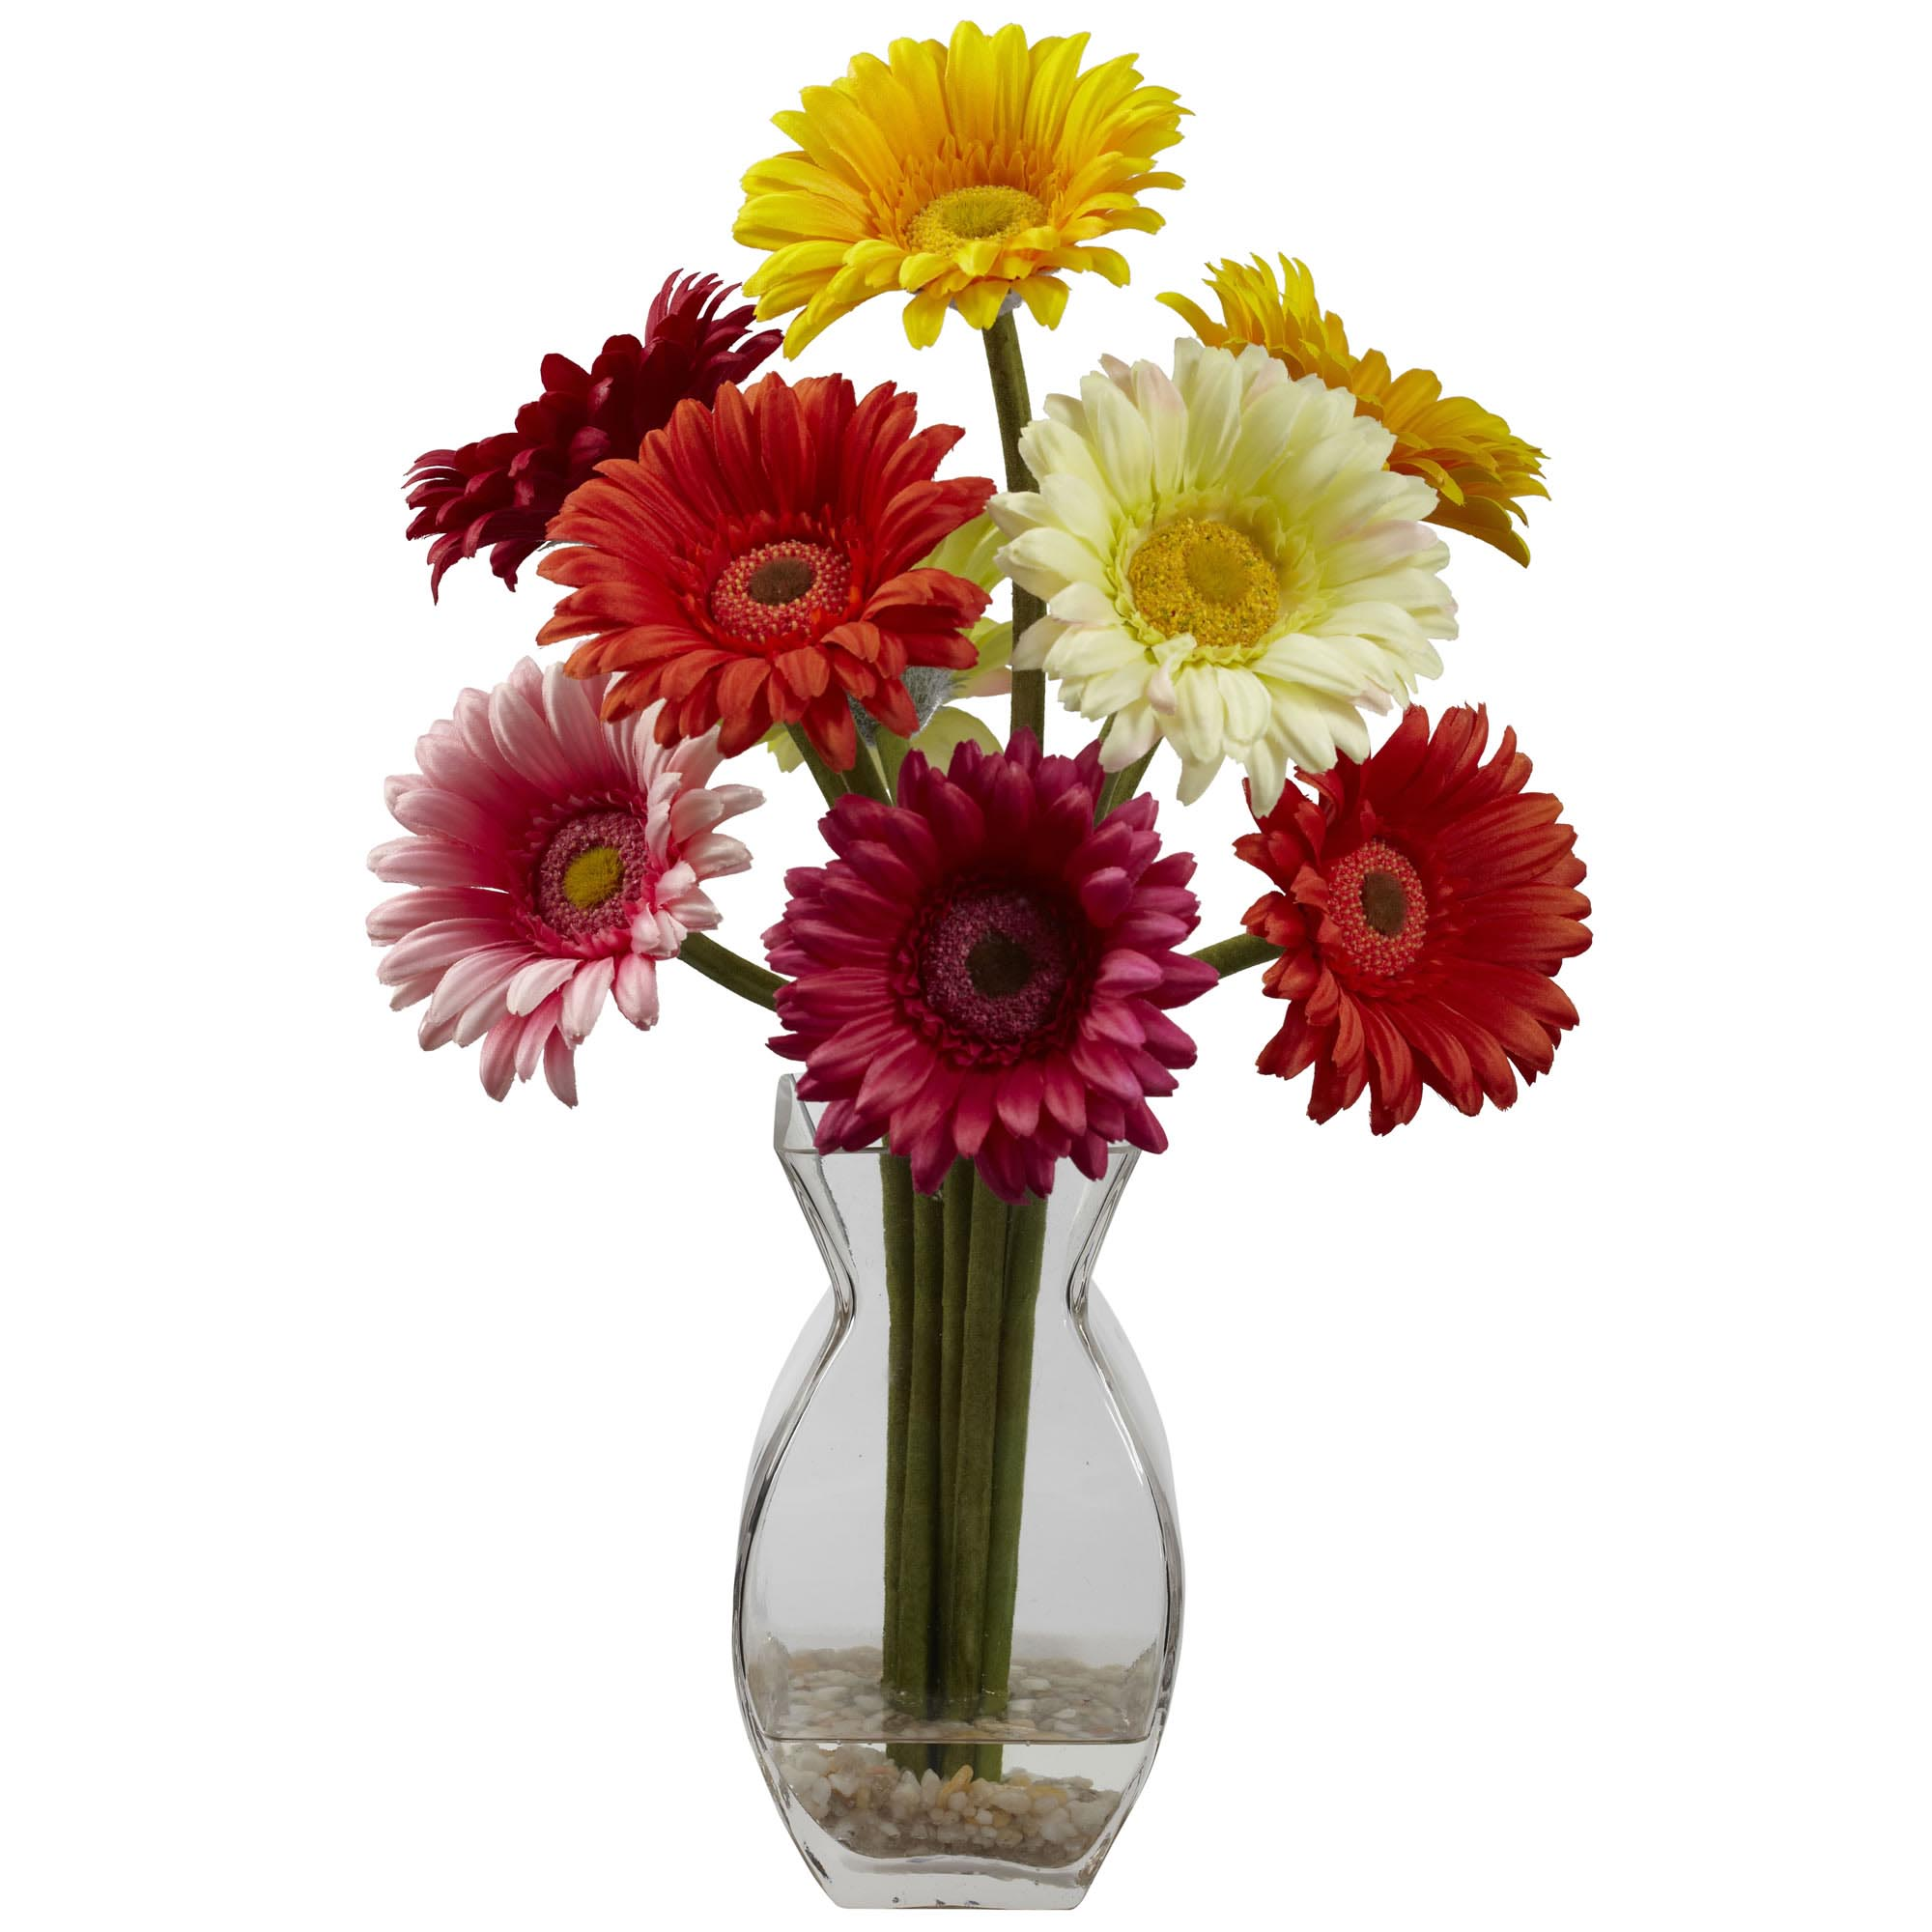 15 inch silk gerber daisy arrangement in vase 1297 as closeup image dhlflorist Image collections